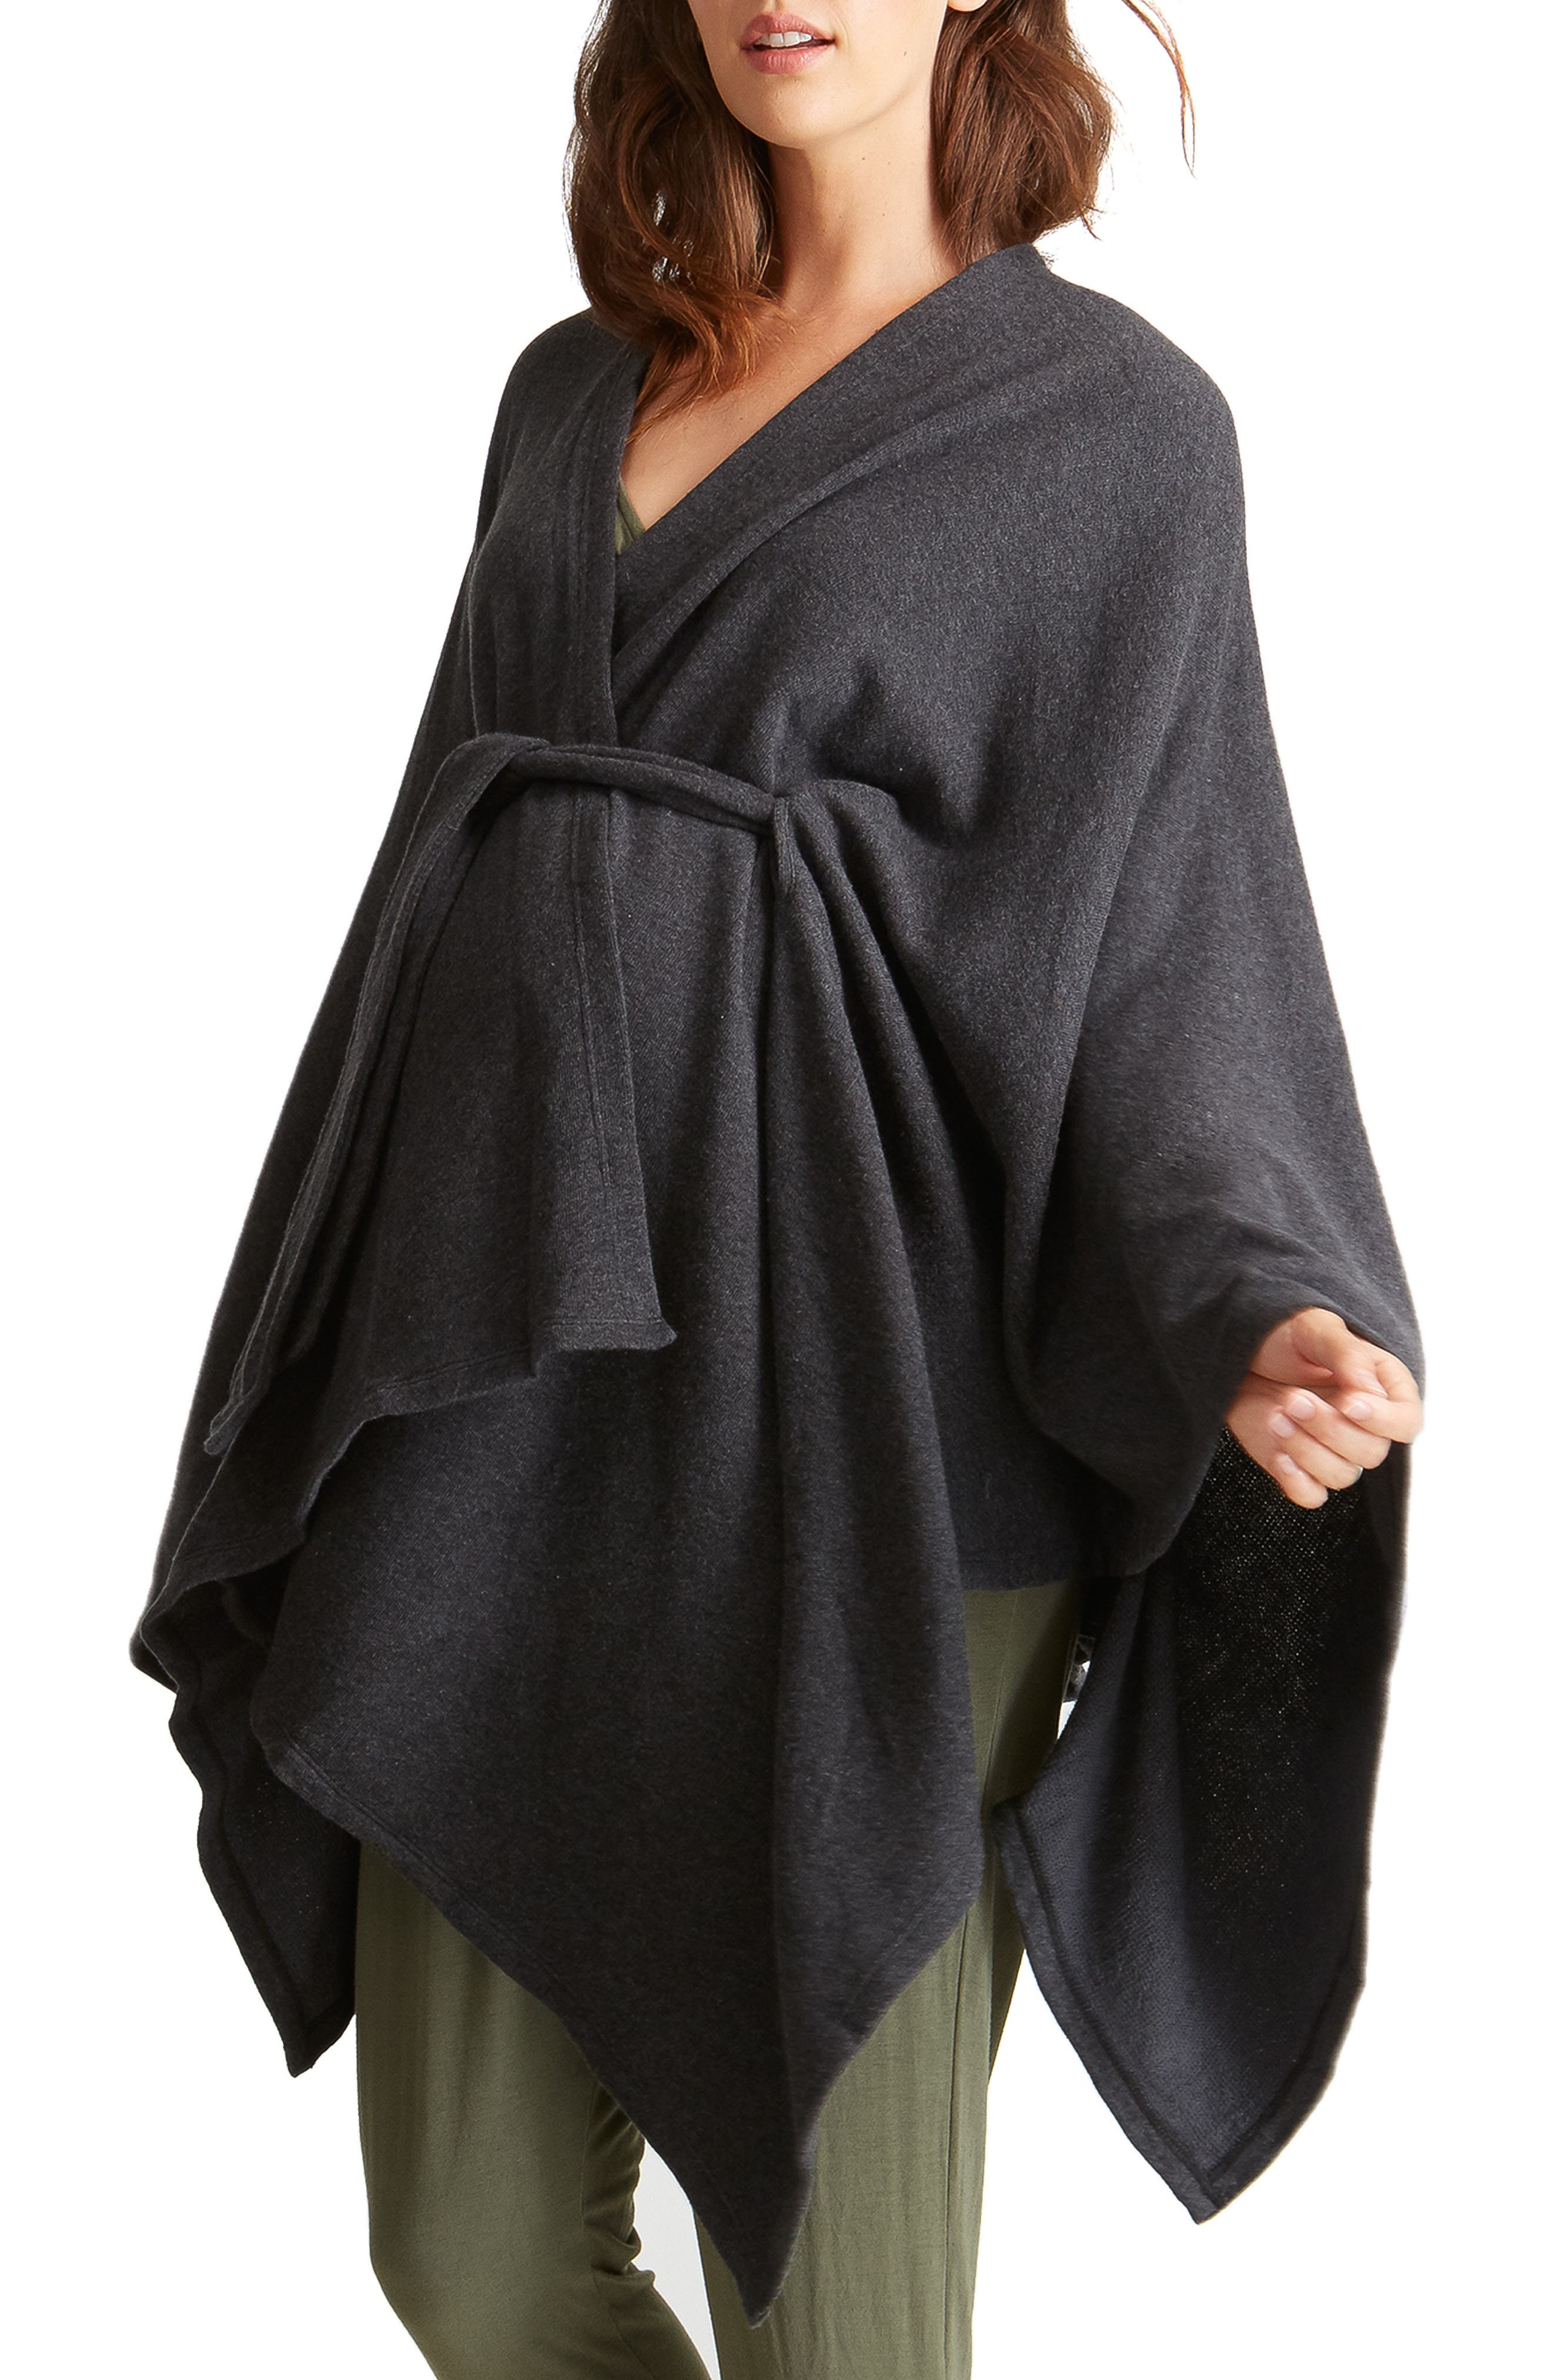 Cozy Maternity Wrap,                             Main thumbnail 1, color,                             CHARCOAL GREY